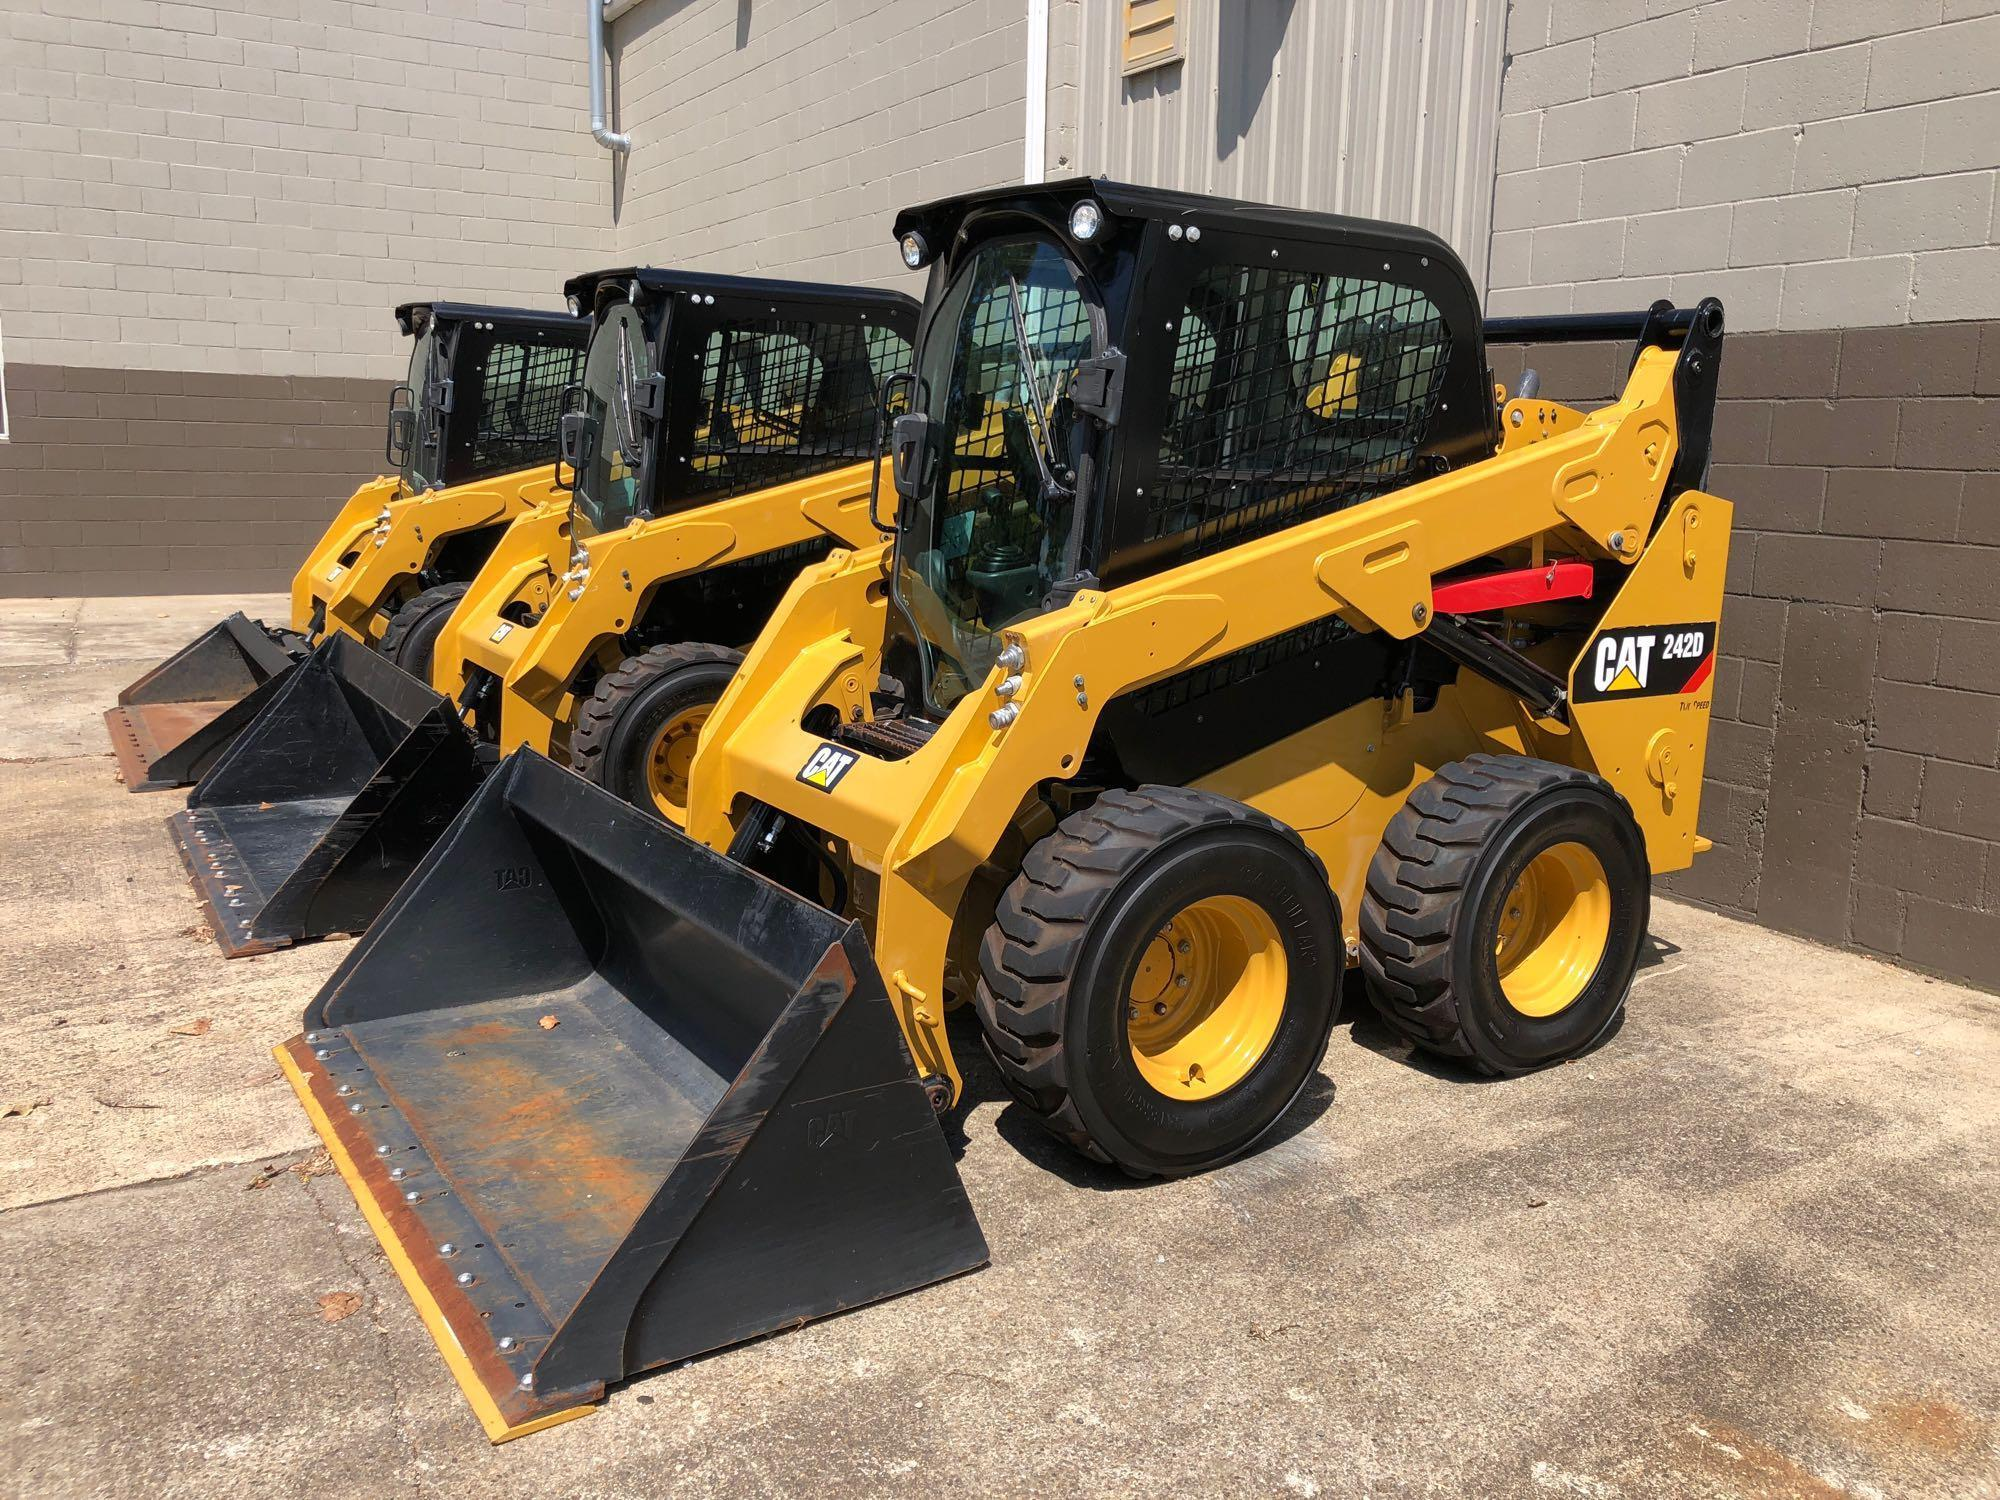 2016 CAT 242D SKID STEER SN:DZT02688 Powered By Cat